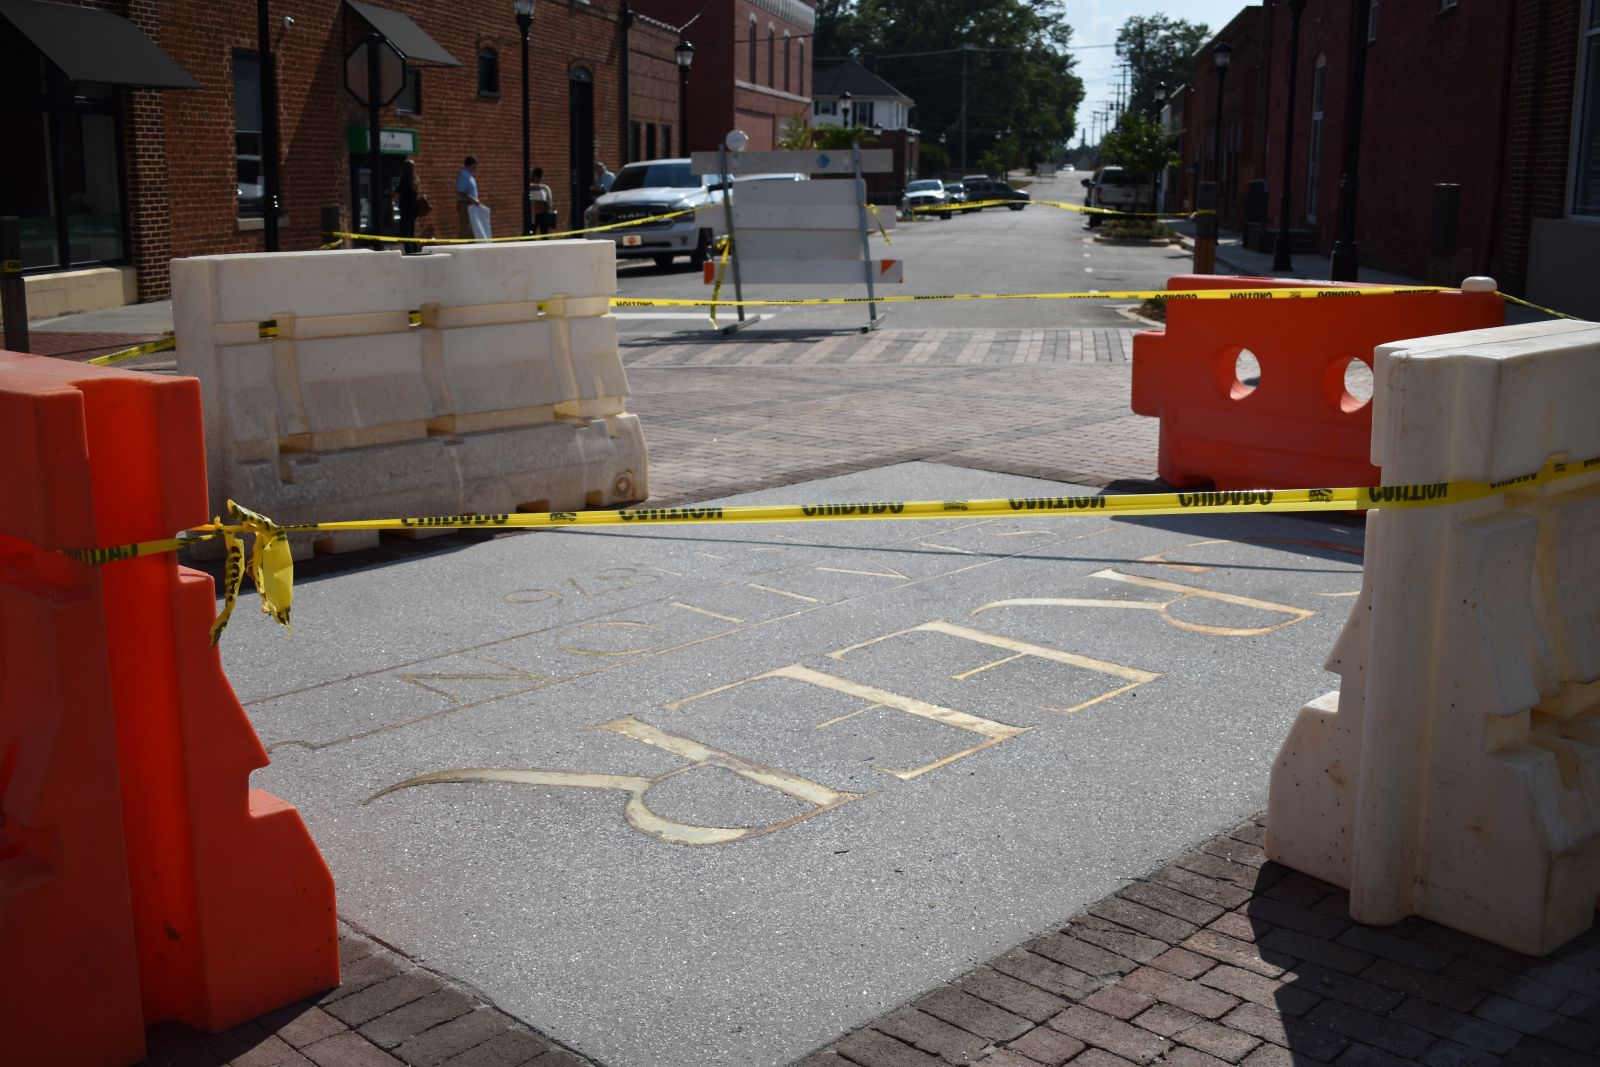 By July 2, the centerpiece inlay at the intersection of Trade and Randall Street had been installed and was blocked off from traffic. (Photo/Molly Hulsey)